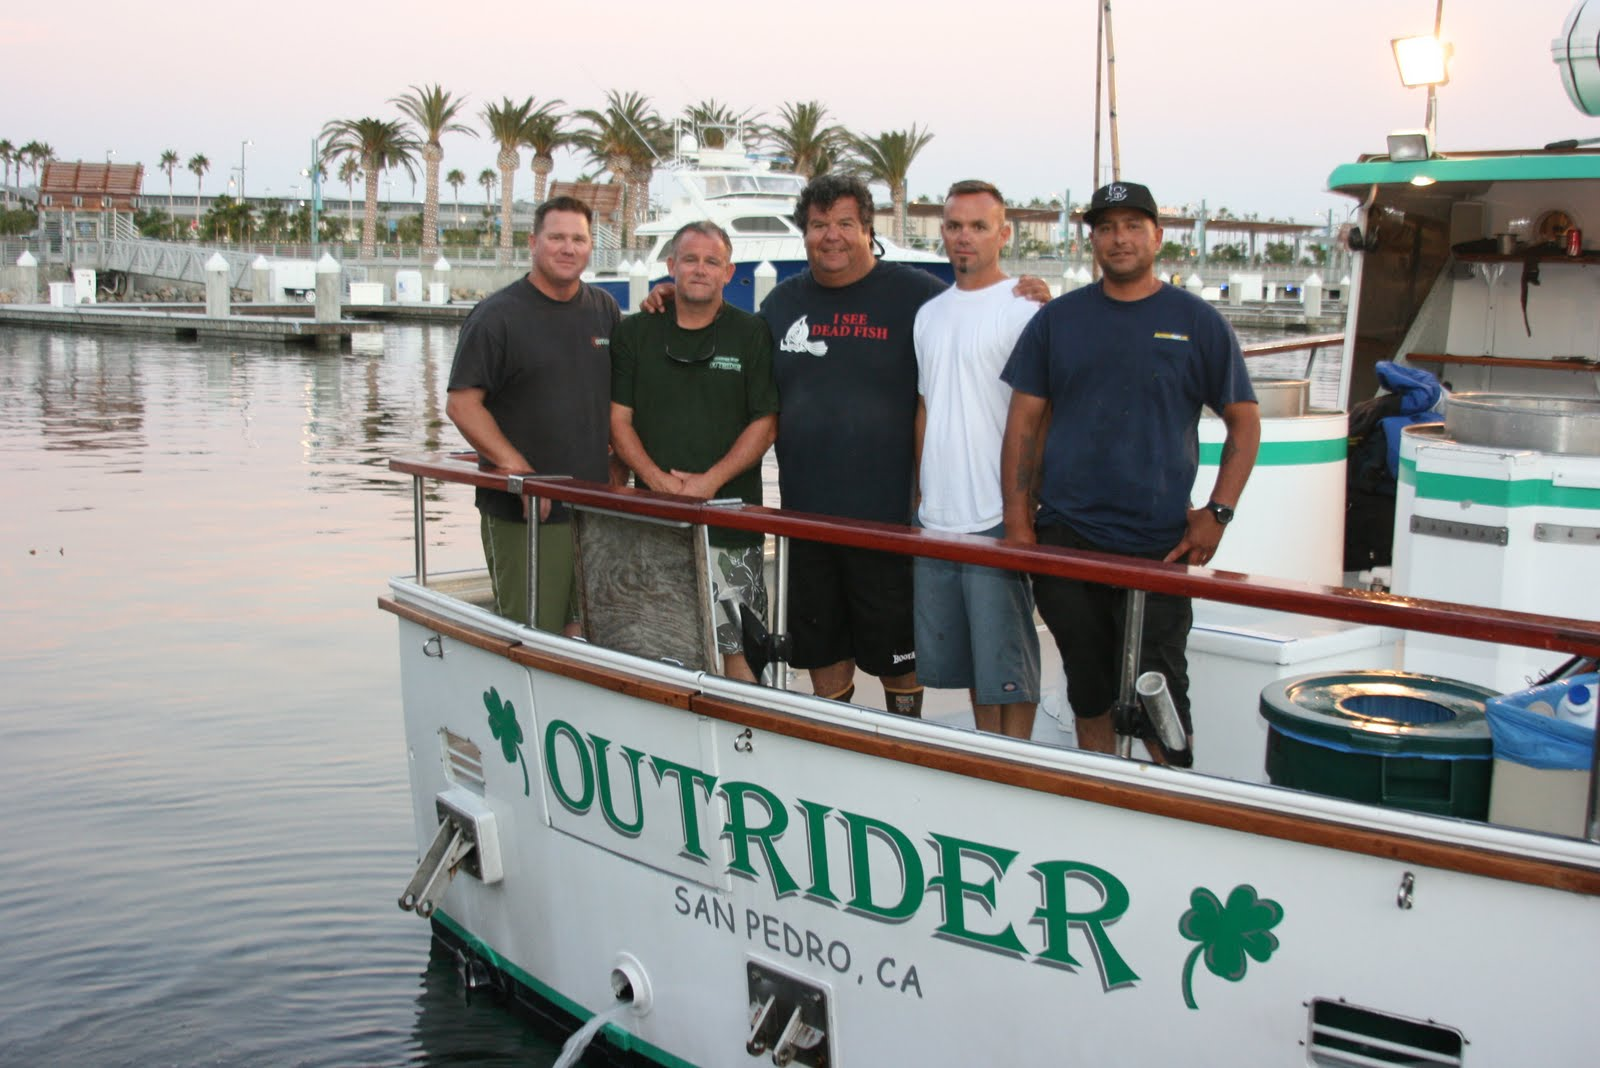 Dan 39 s journal outridder fishing report it was an awesome for Sport fishing with dan hernandez